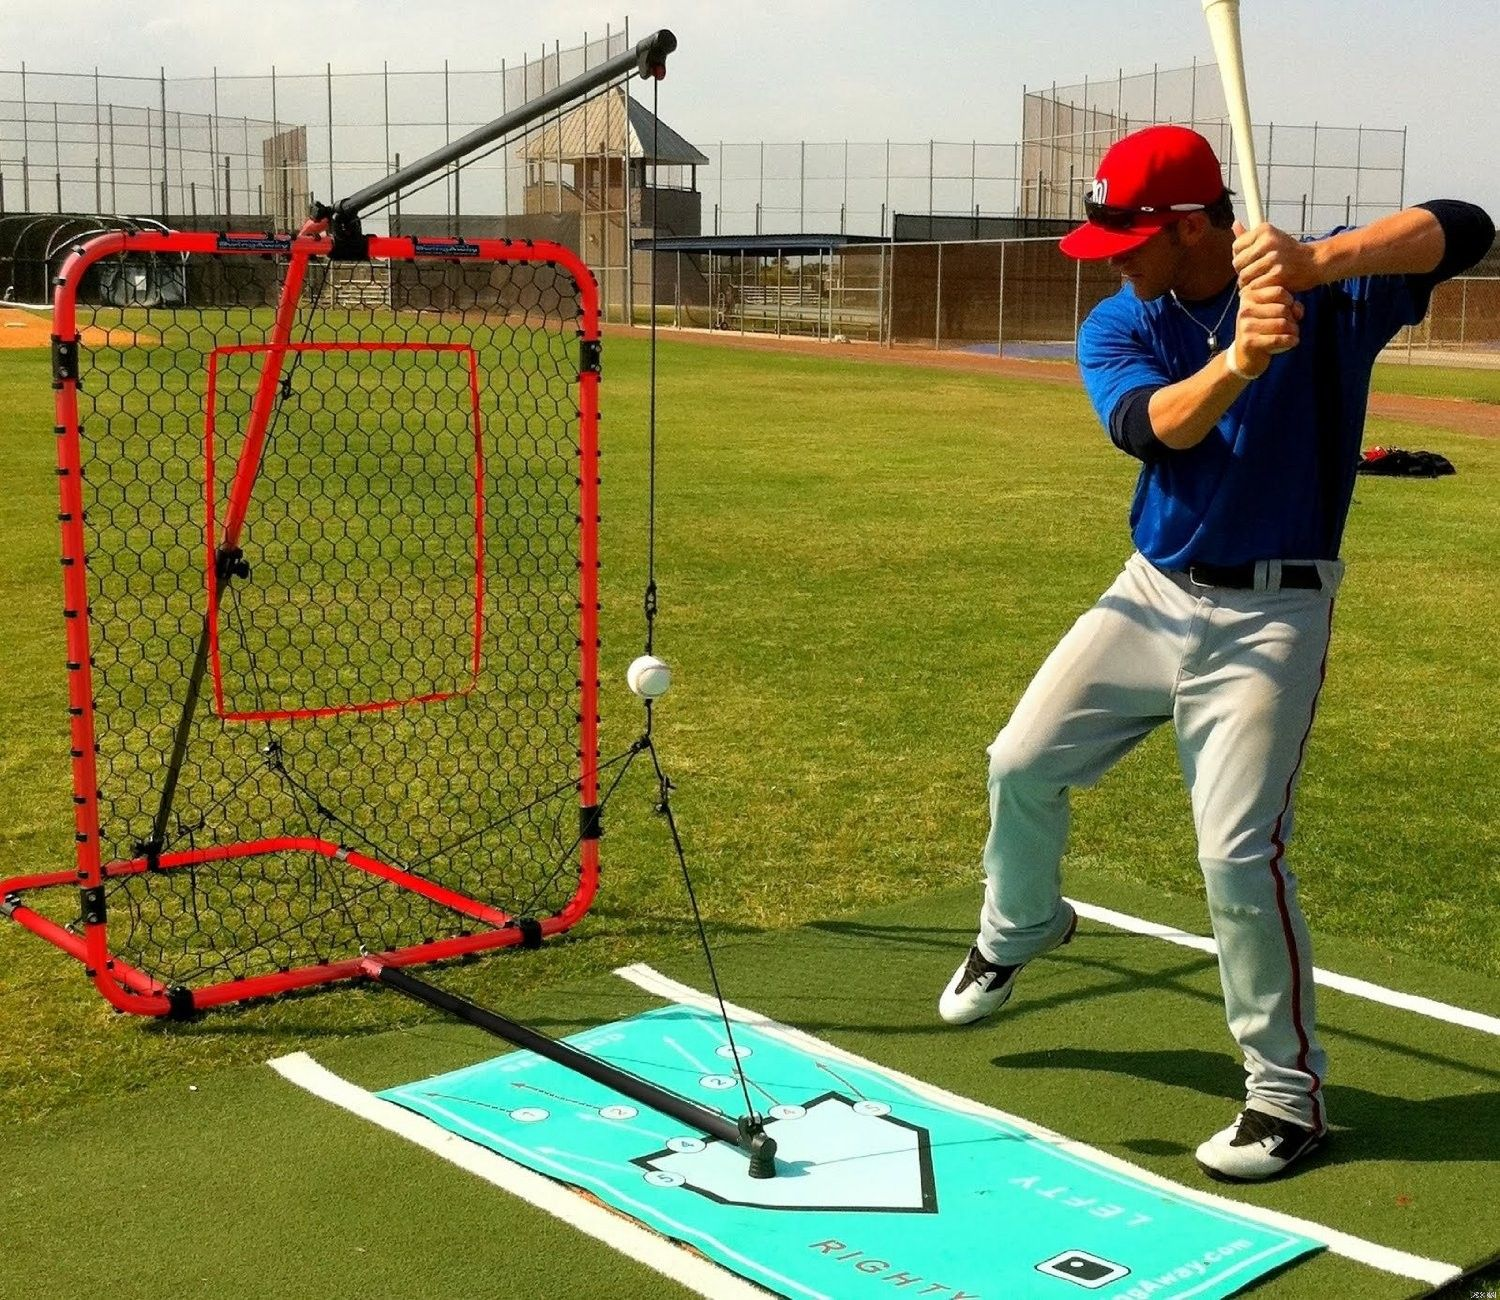 30 Smart Ideas How To Make Backyard Batting Cages Simphome Batting Cage Backyard Baseball Hitting Baseball Equipment